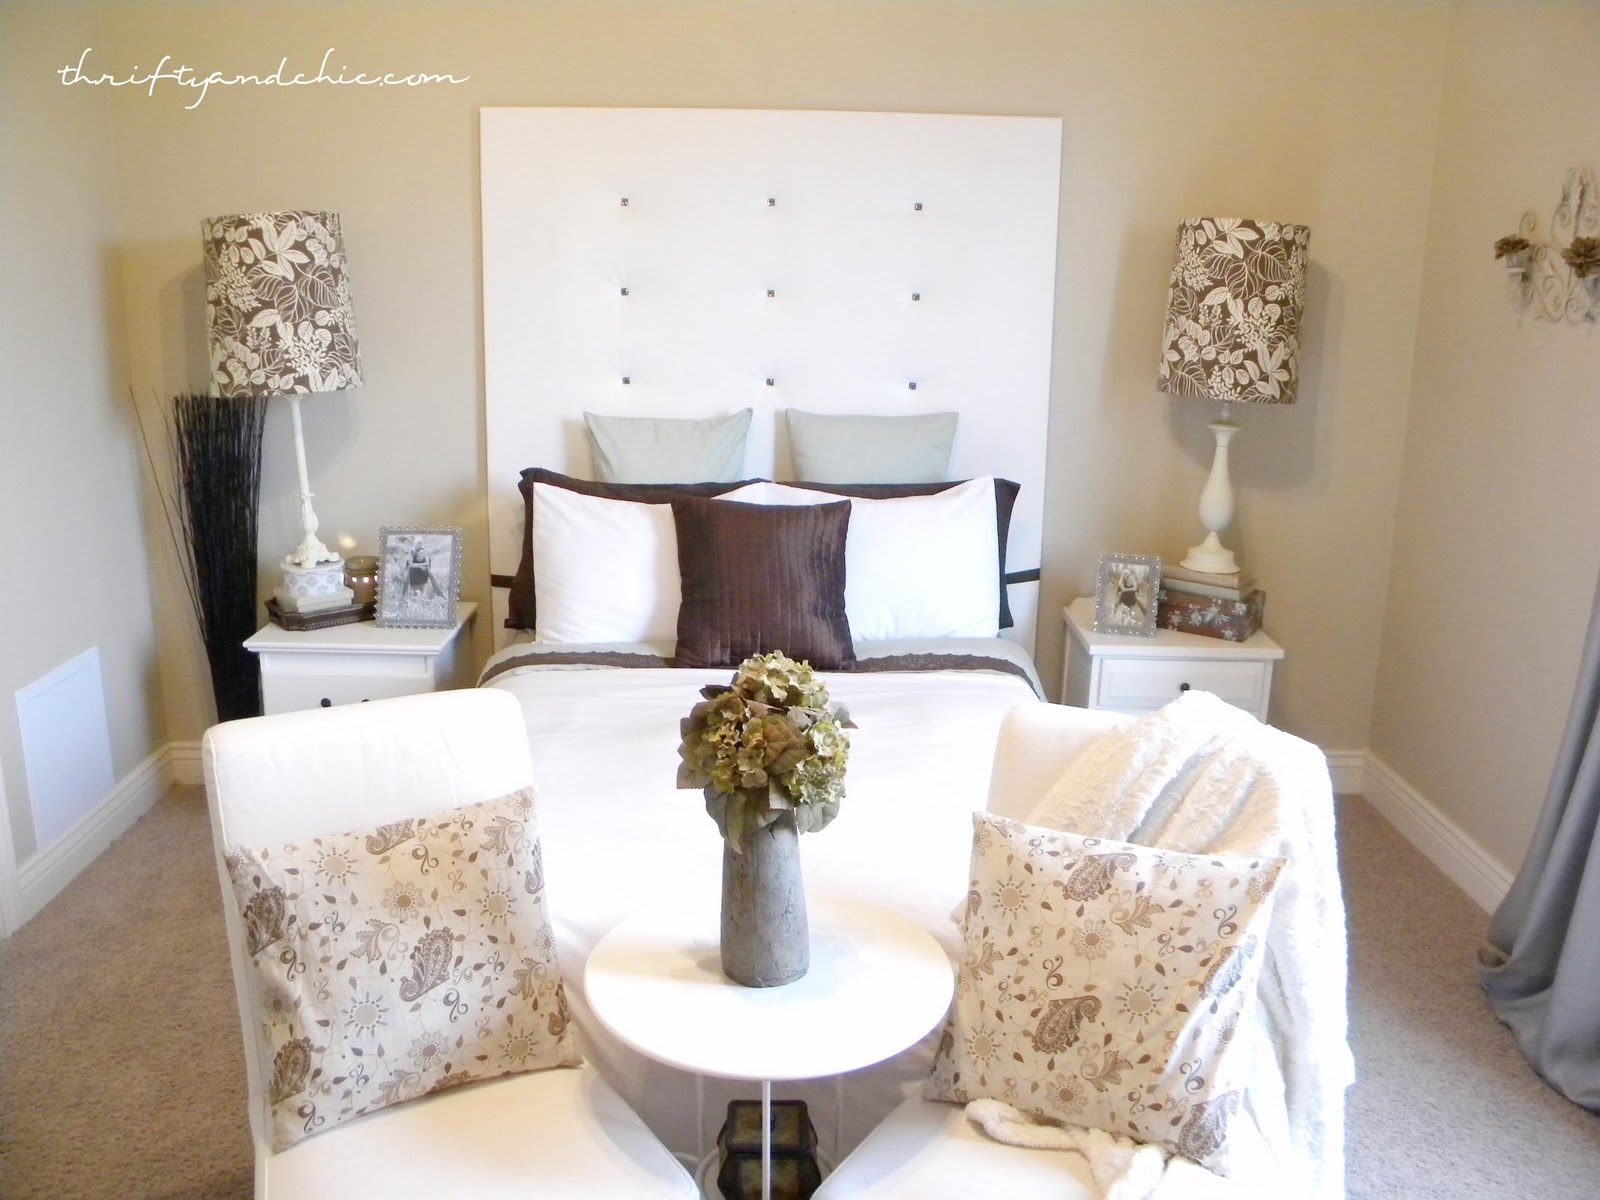 Thrifty and Chic house tour; farmhouse style living room ...  Thrifty Bedroom Ideas